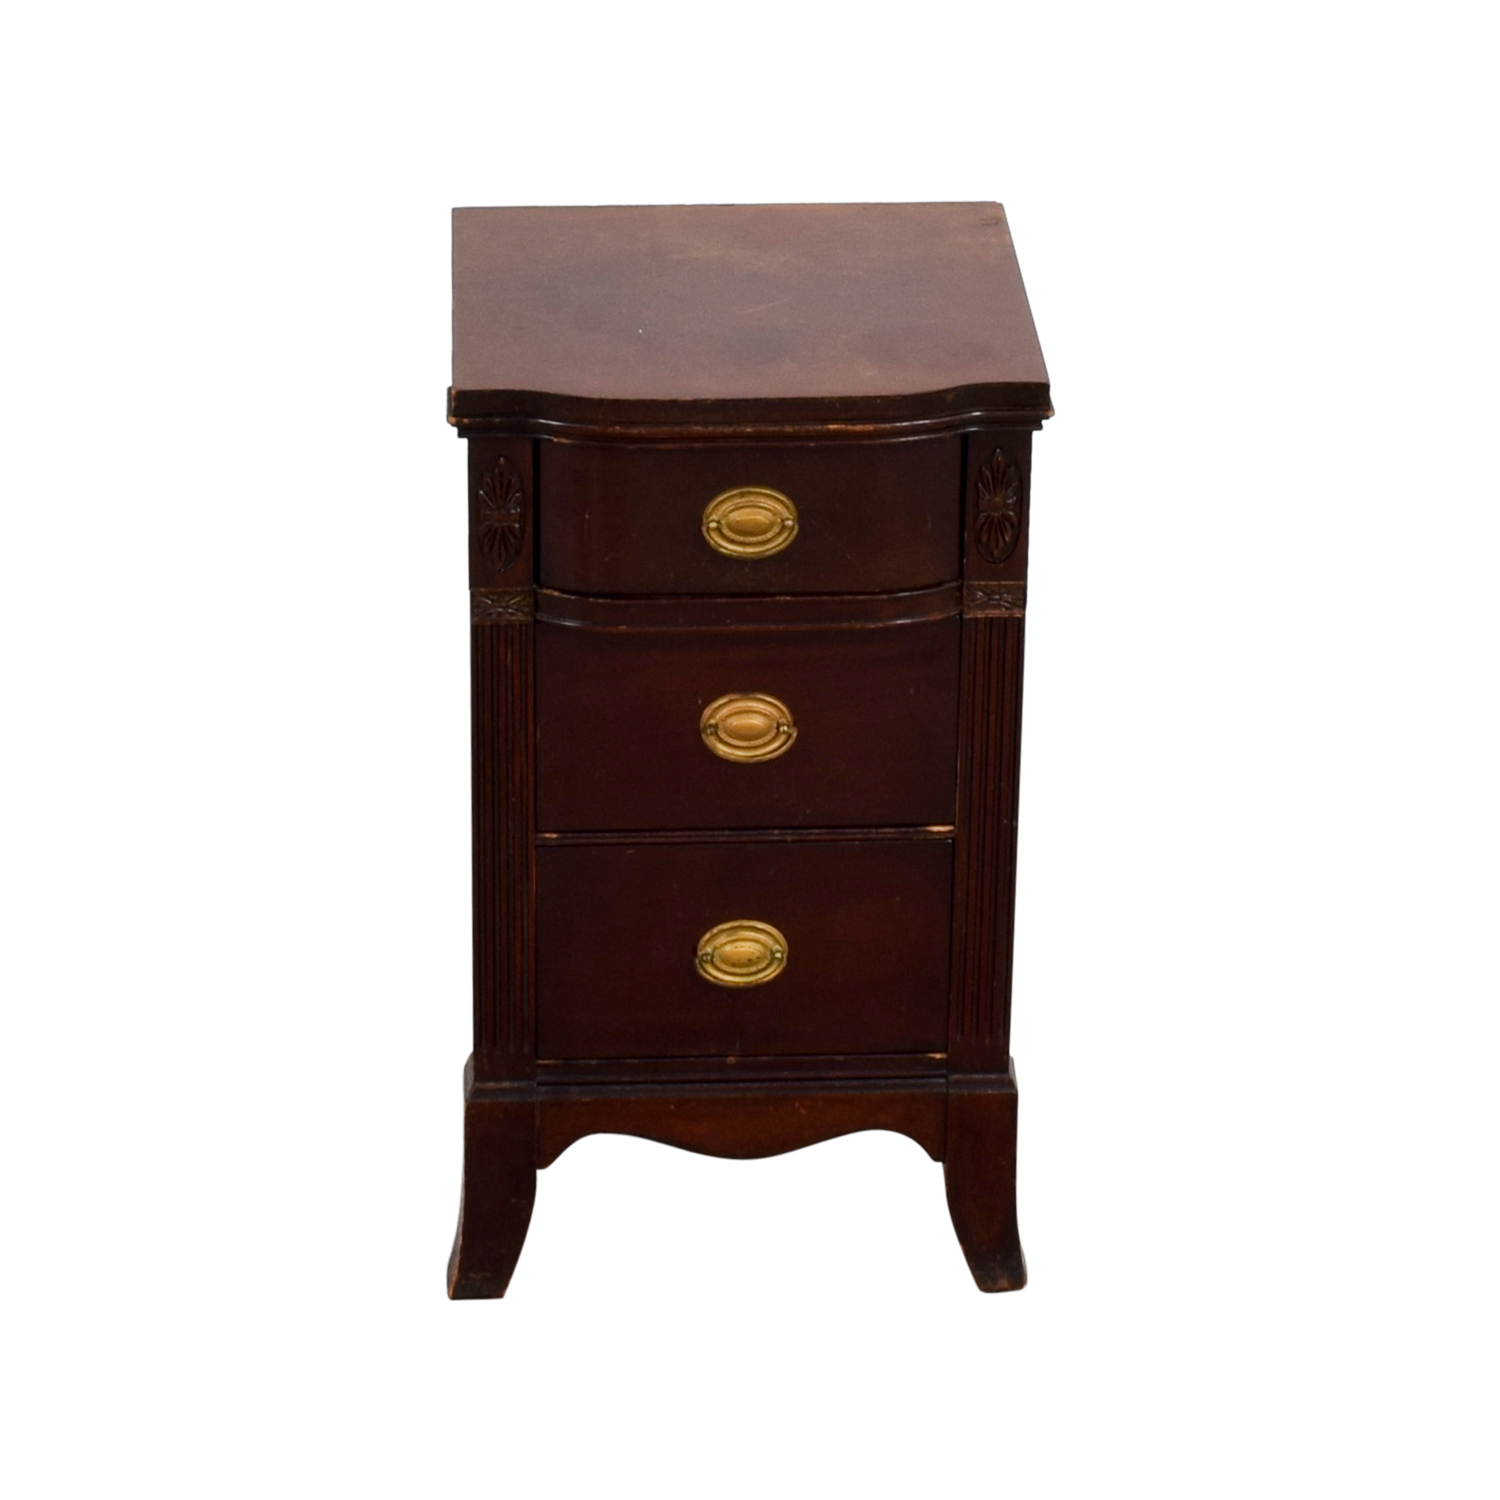 Wood with Gold Accent Nightstand End Tables